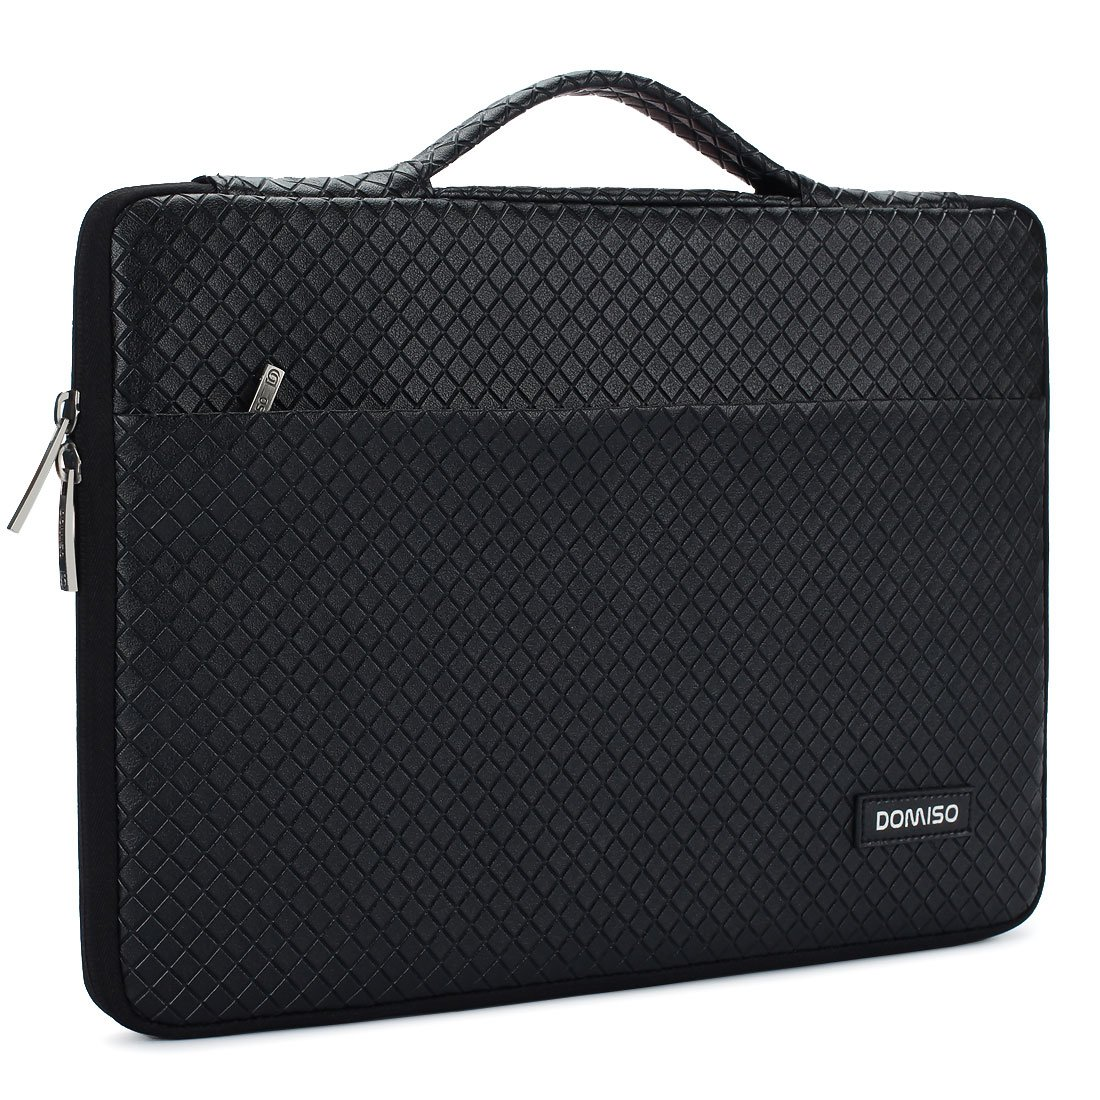 """DOMISO 15.6 Inch Waterproof Laptop Sleeve with Handle Portable Carrying Case for 15.6"""" Laptops/Apple/Lenovo IdeaPad/Acer Aspire E15/HP ENVY 15/Dell/ASUS, Bright Black"""